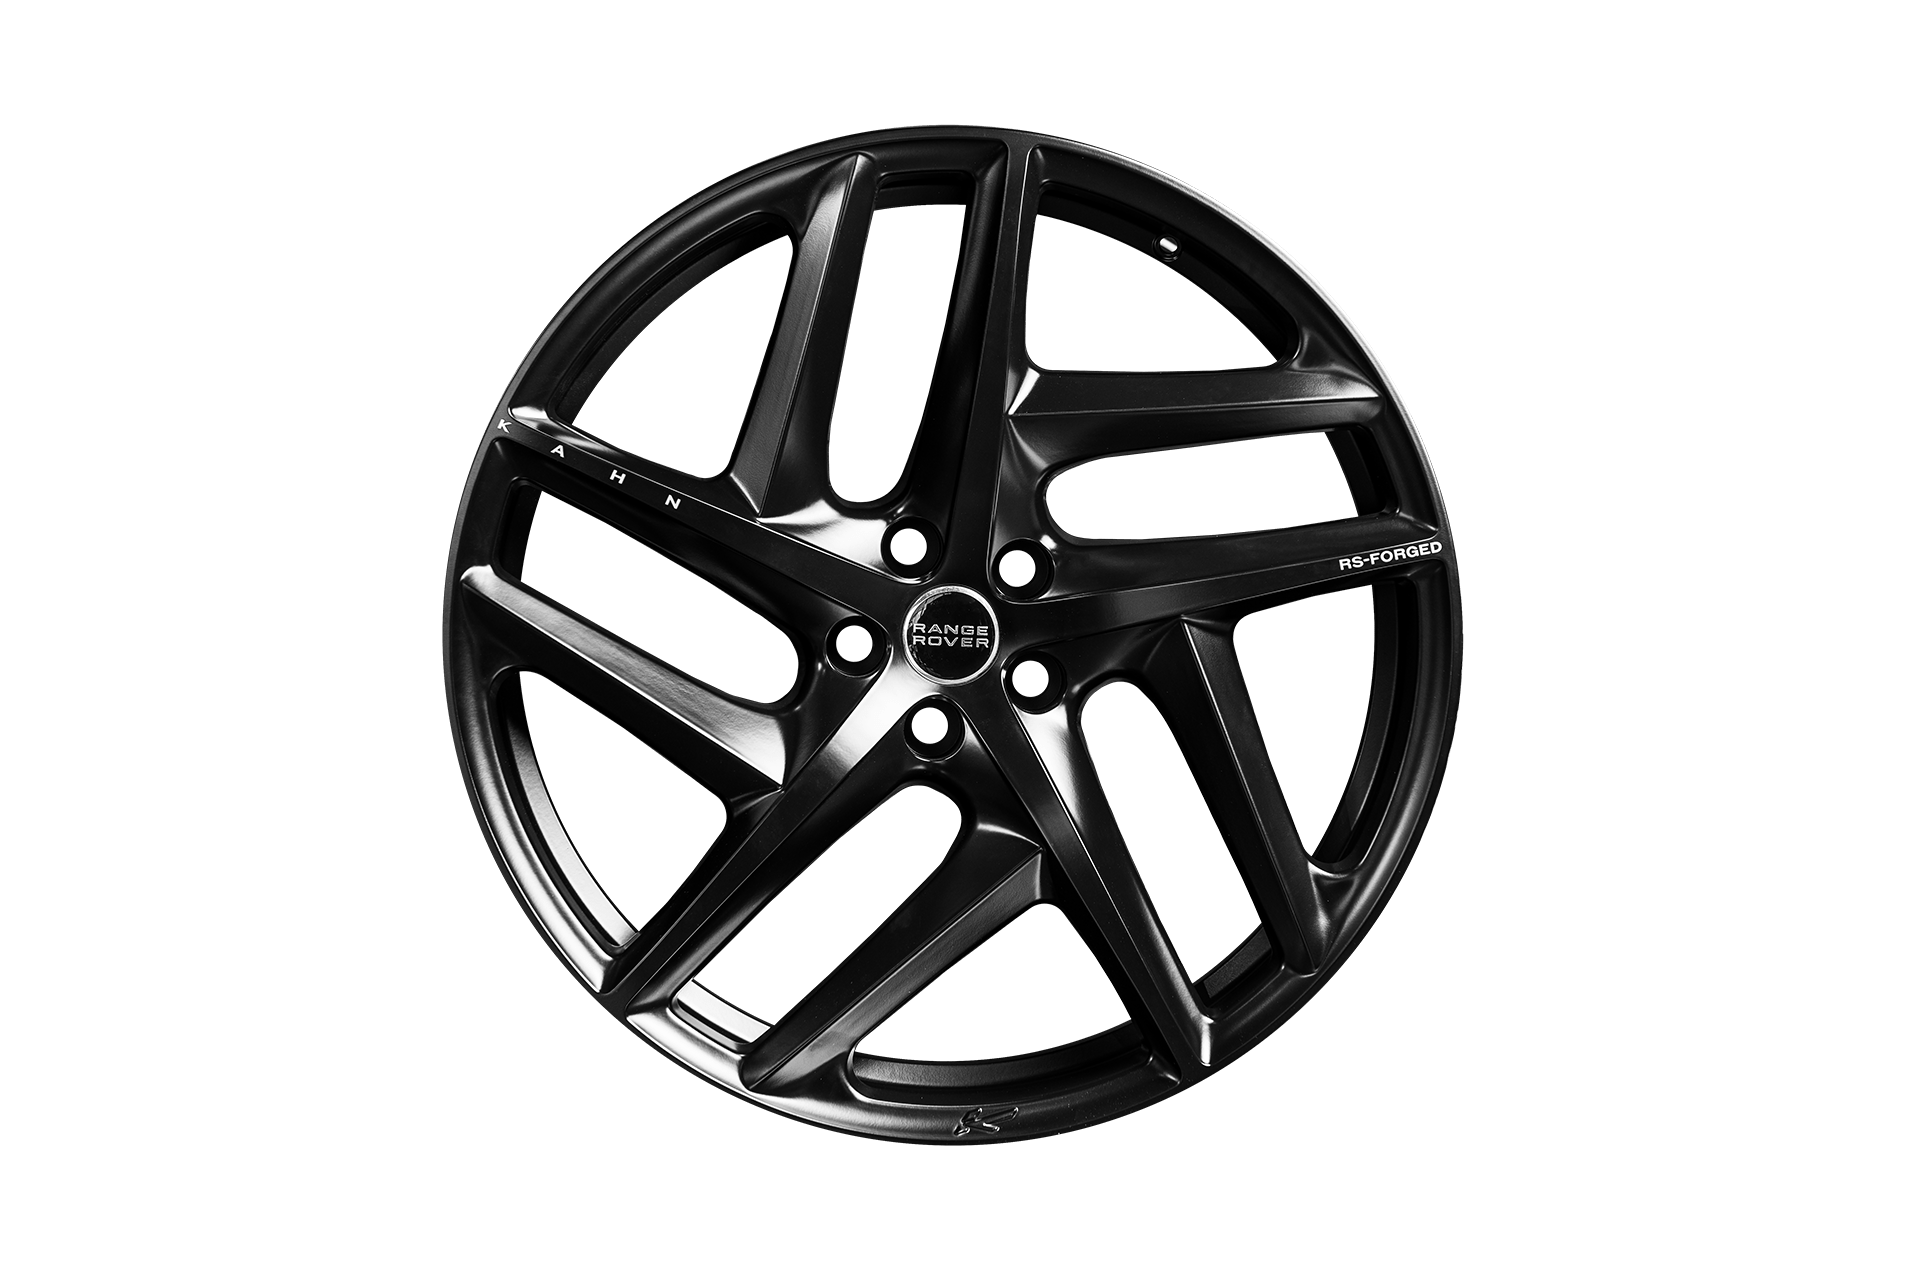 Range Rover Sport (2018-PRESENT) Type 52 RS-Forged Alloy Wheels